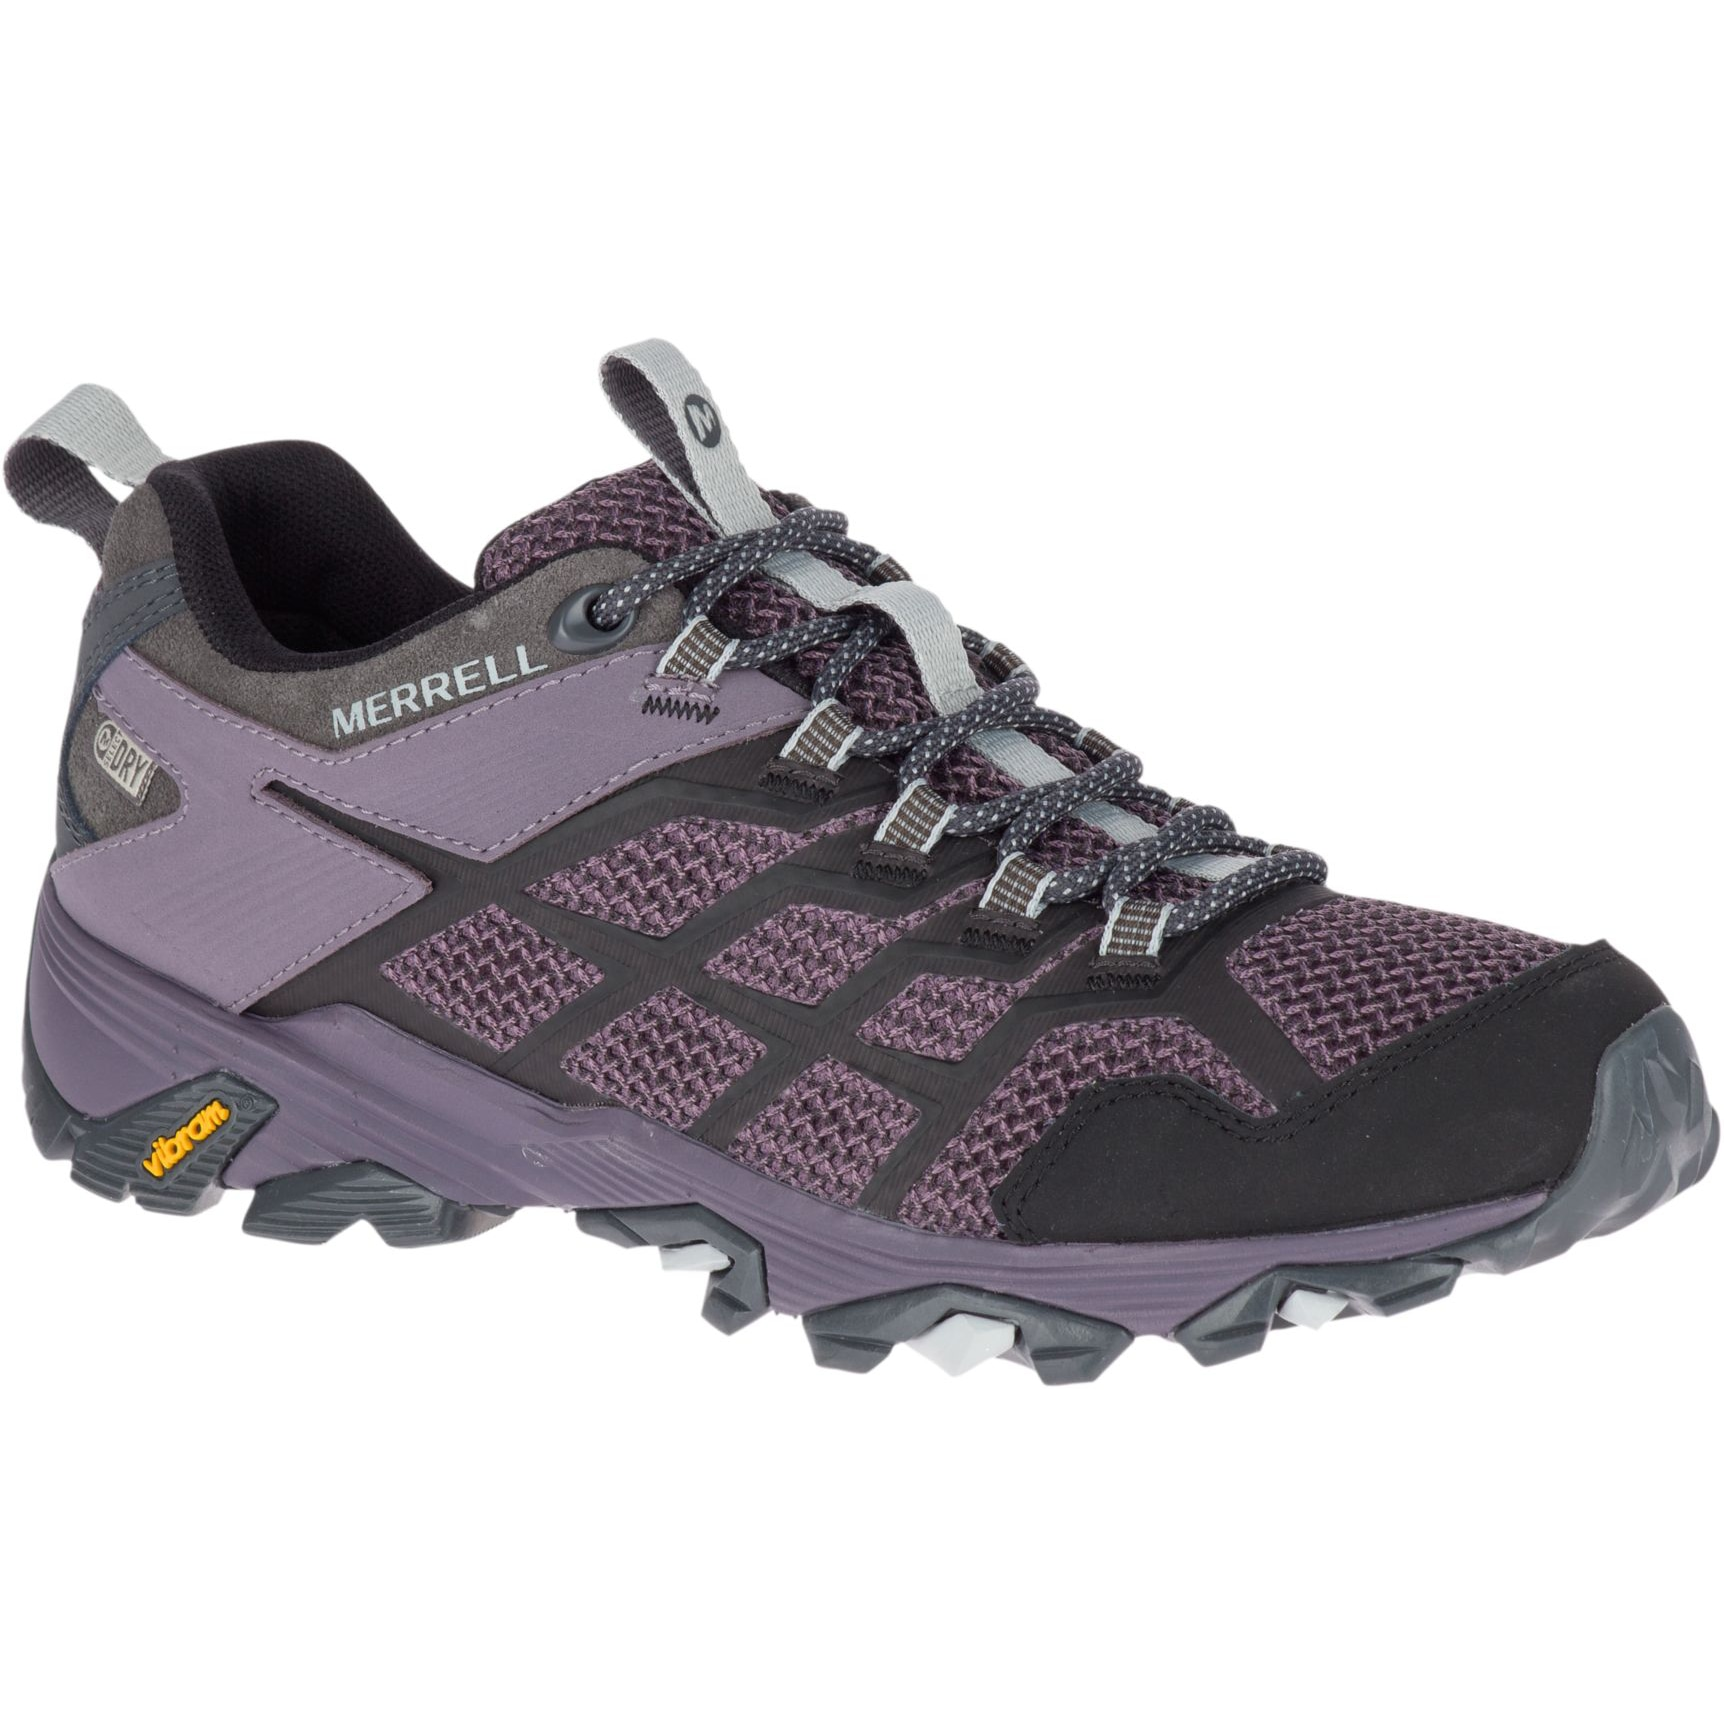 Moab FST Waterproof Shoe - Women's